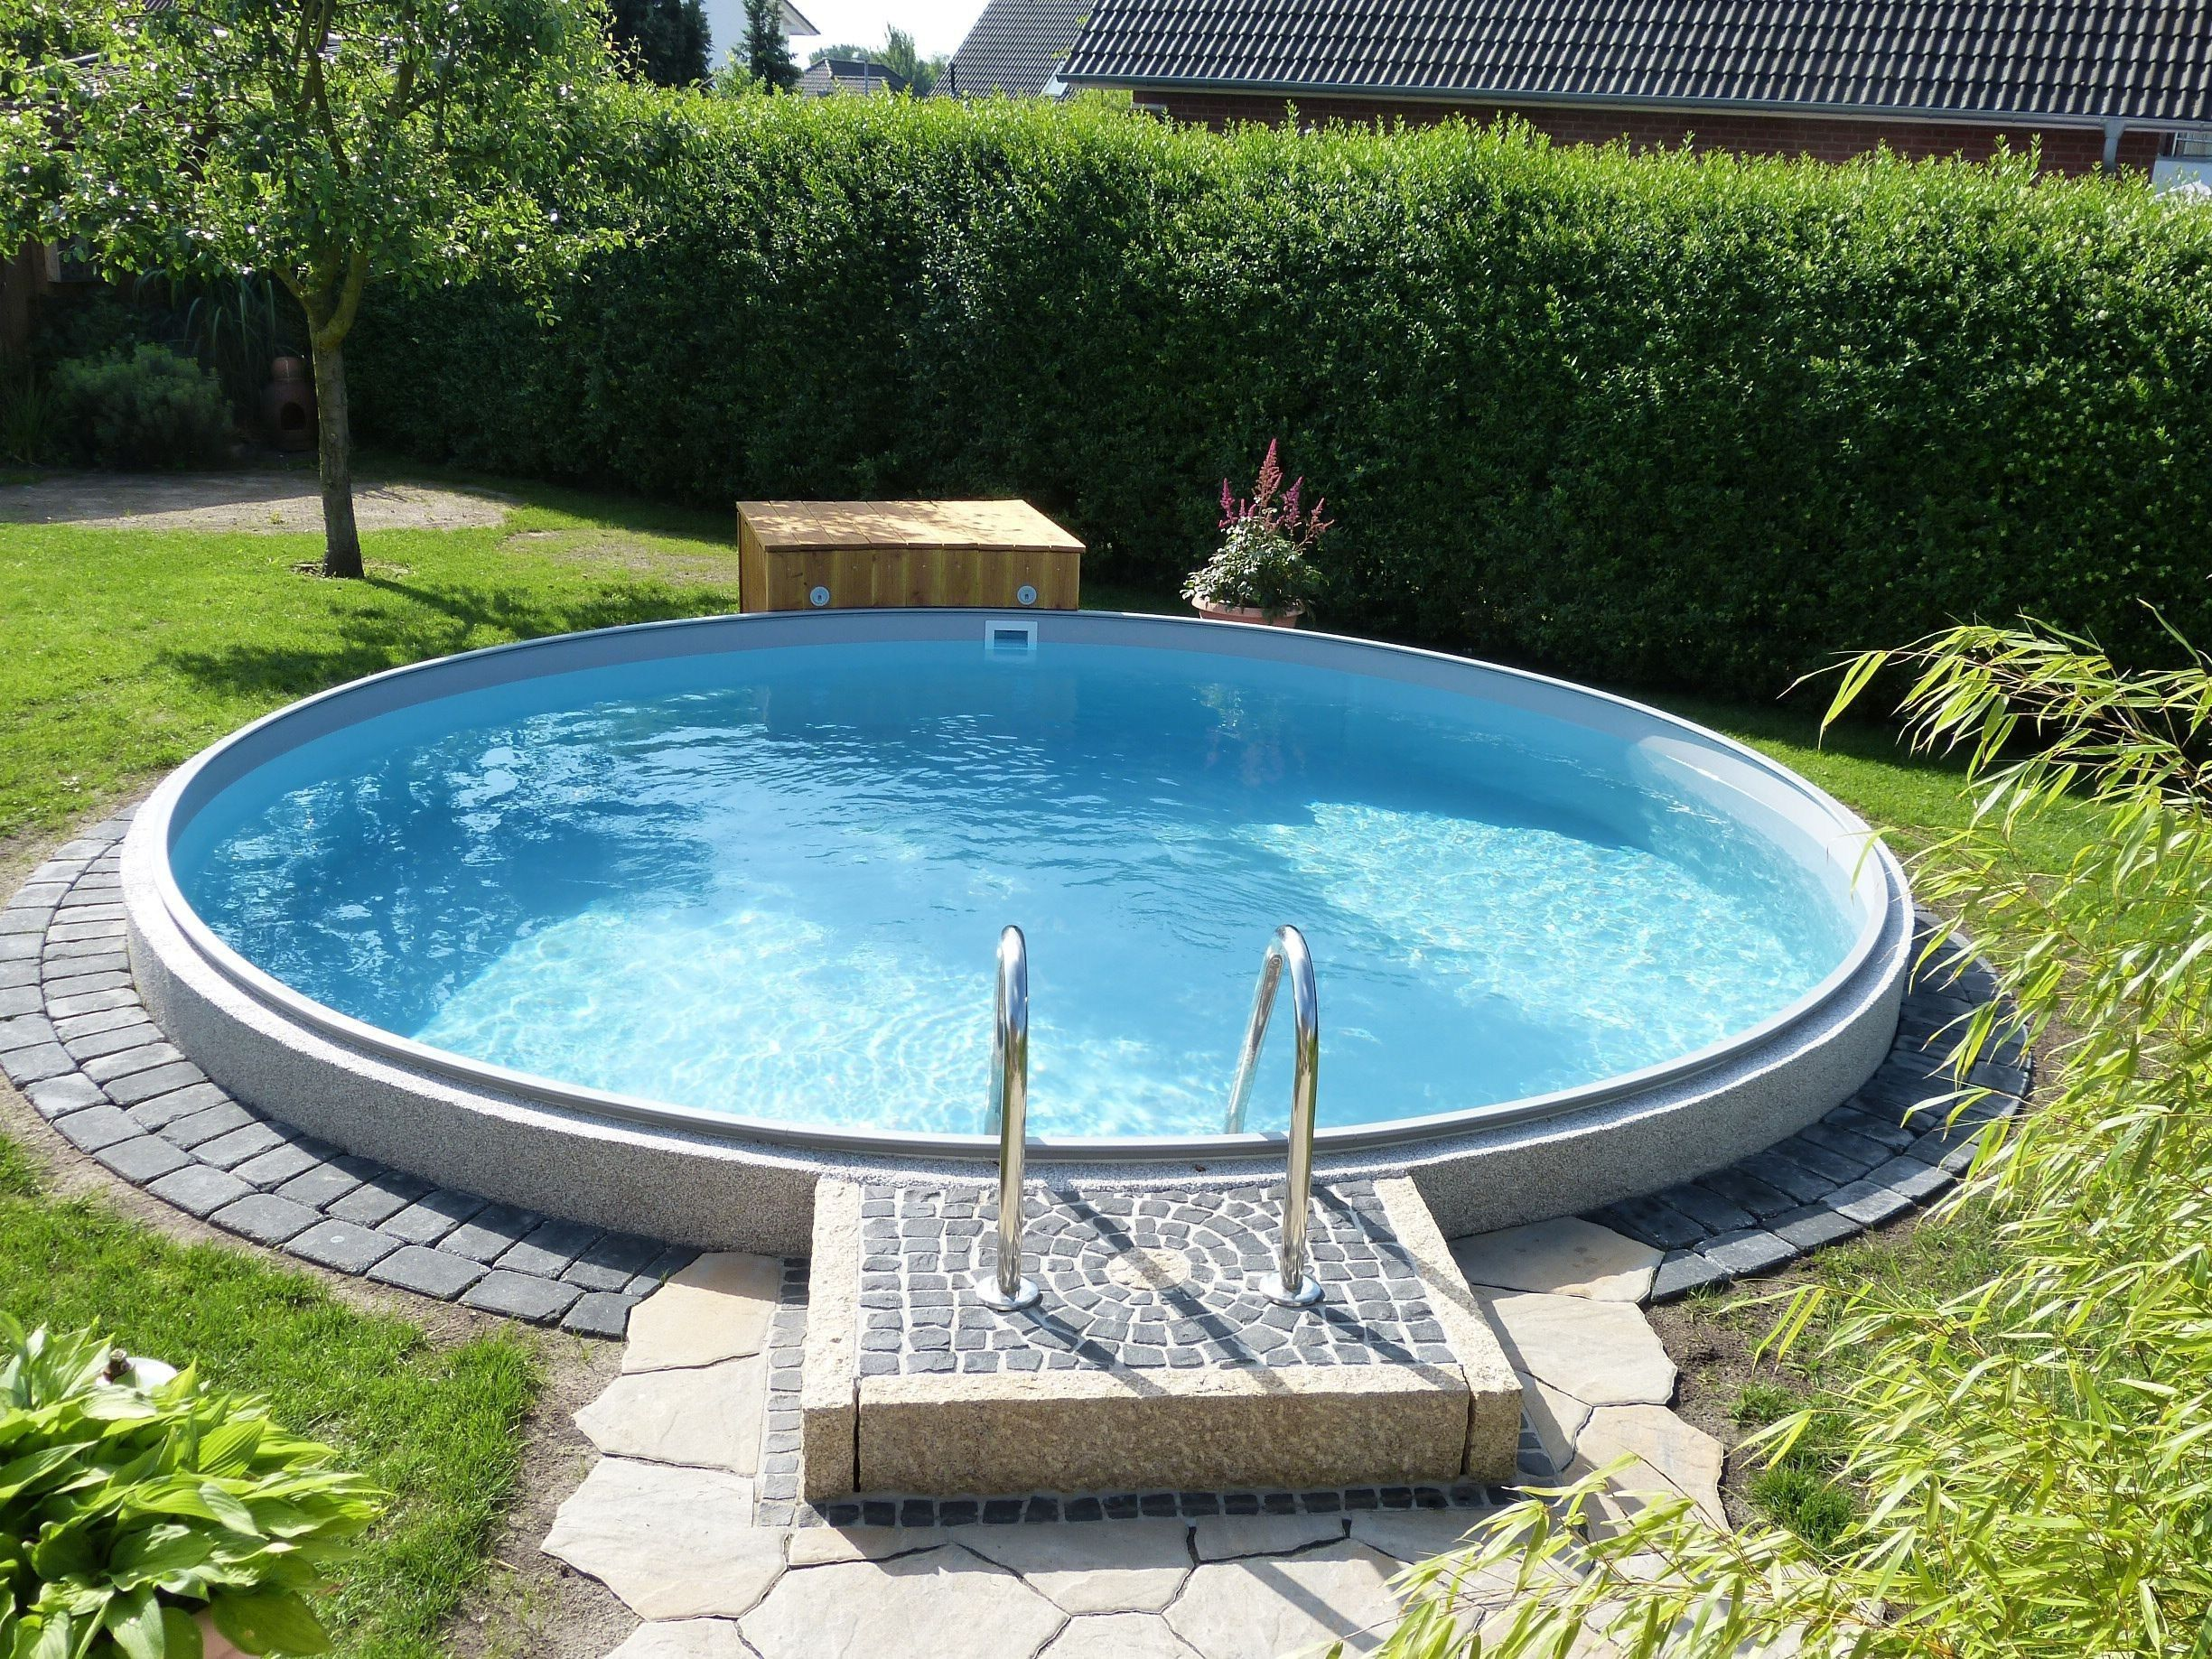 Pool Bauen Styropor Beautiful Schwimmteich Filter Selber Bauen Outdoor Decor Pools